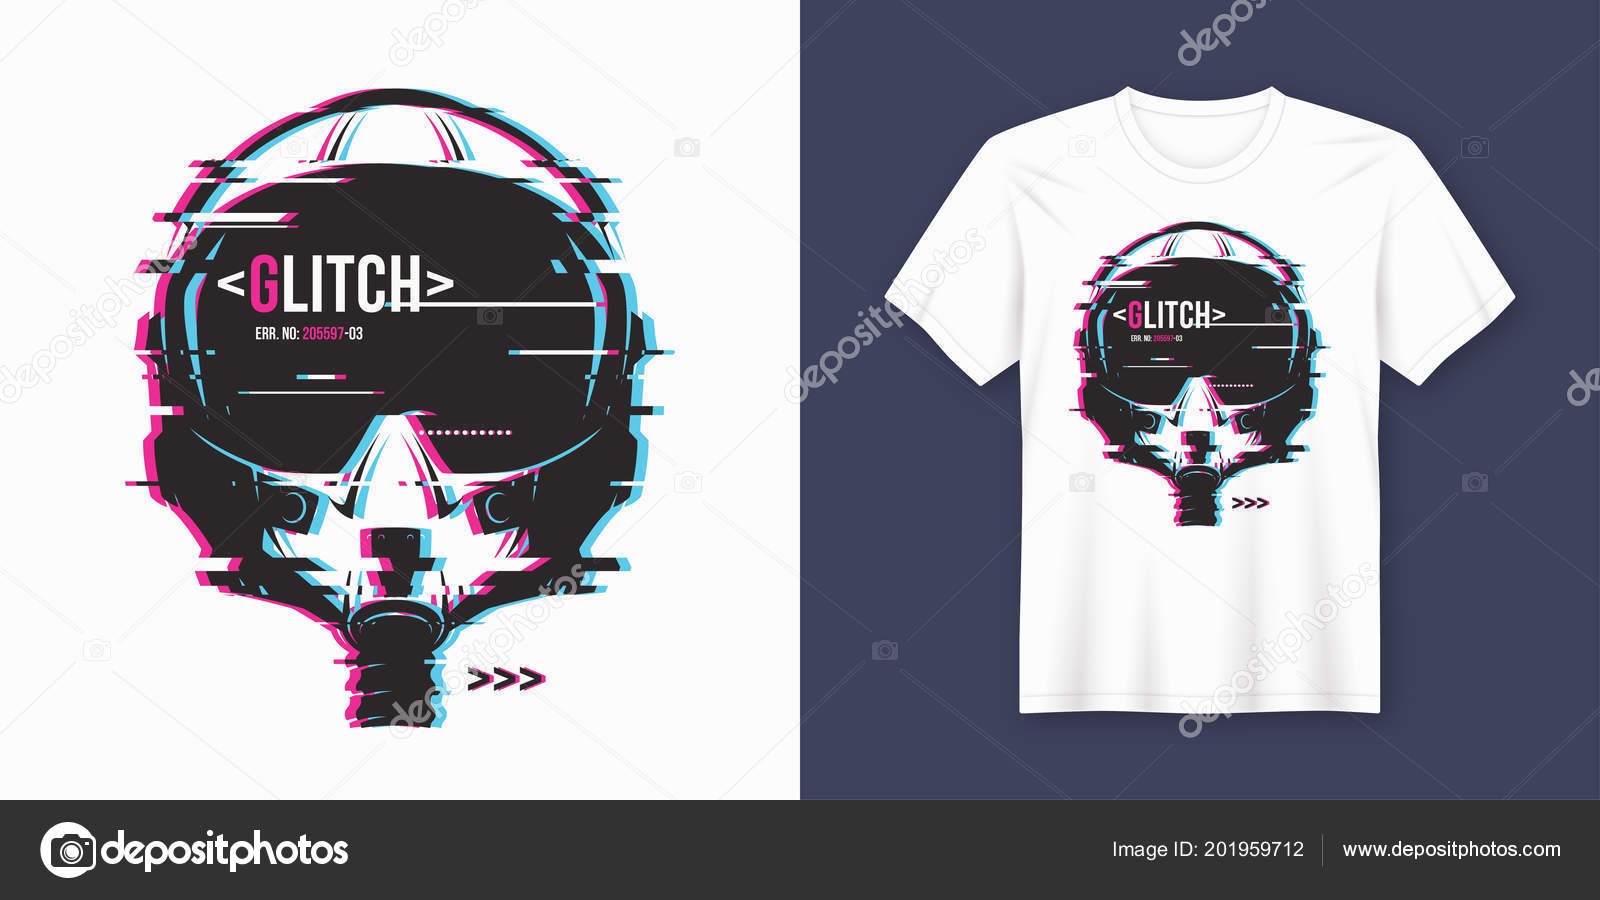 ed4c2196 Stylish t-shirt and apparel trendy design with glitchy flight he — Stock  Vector